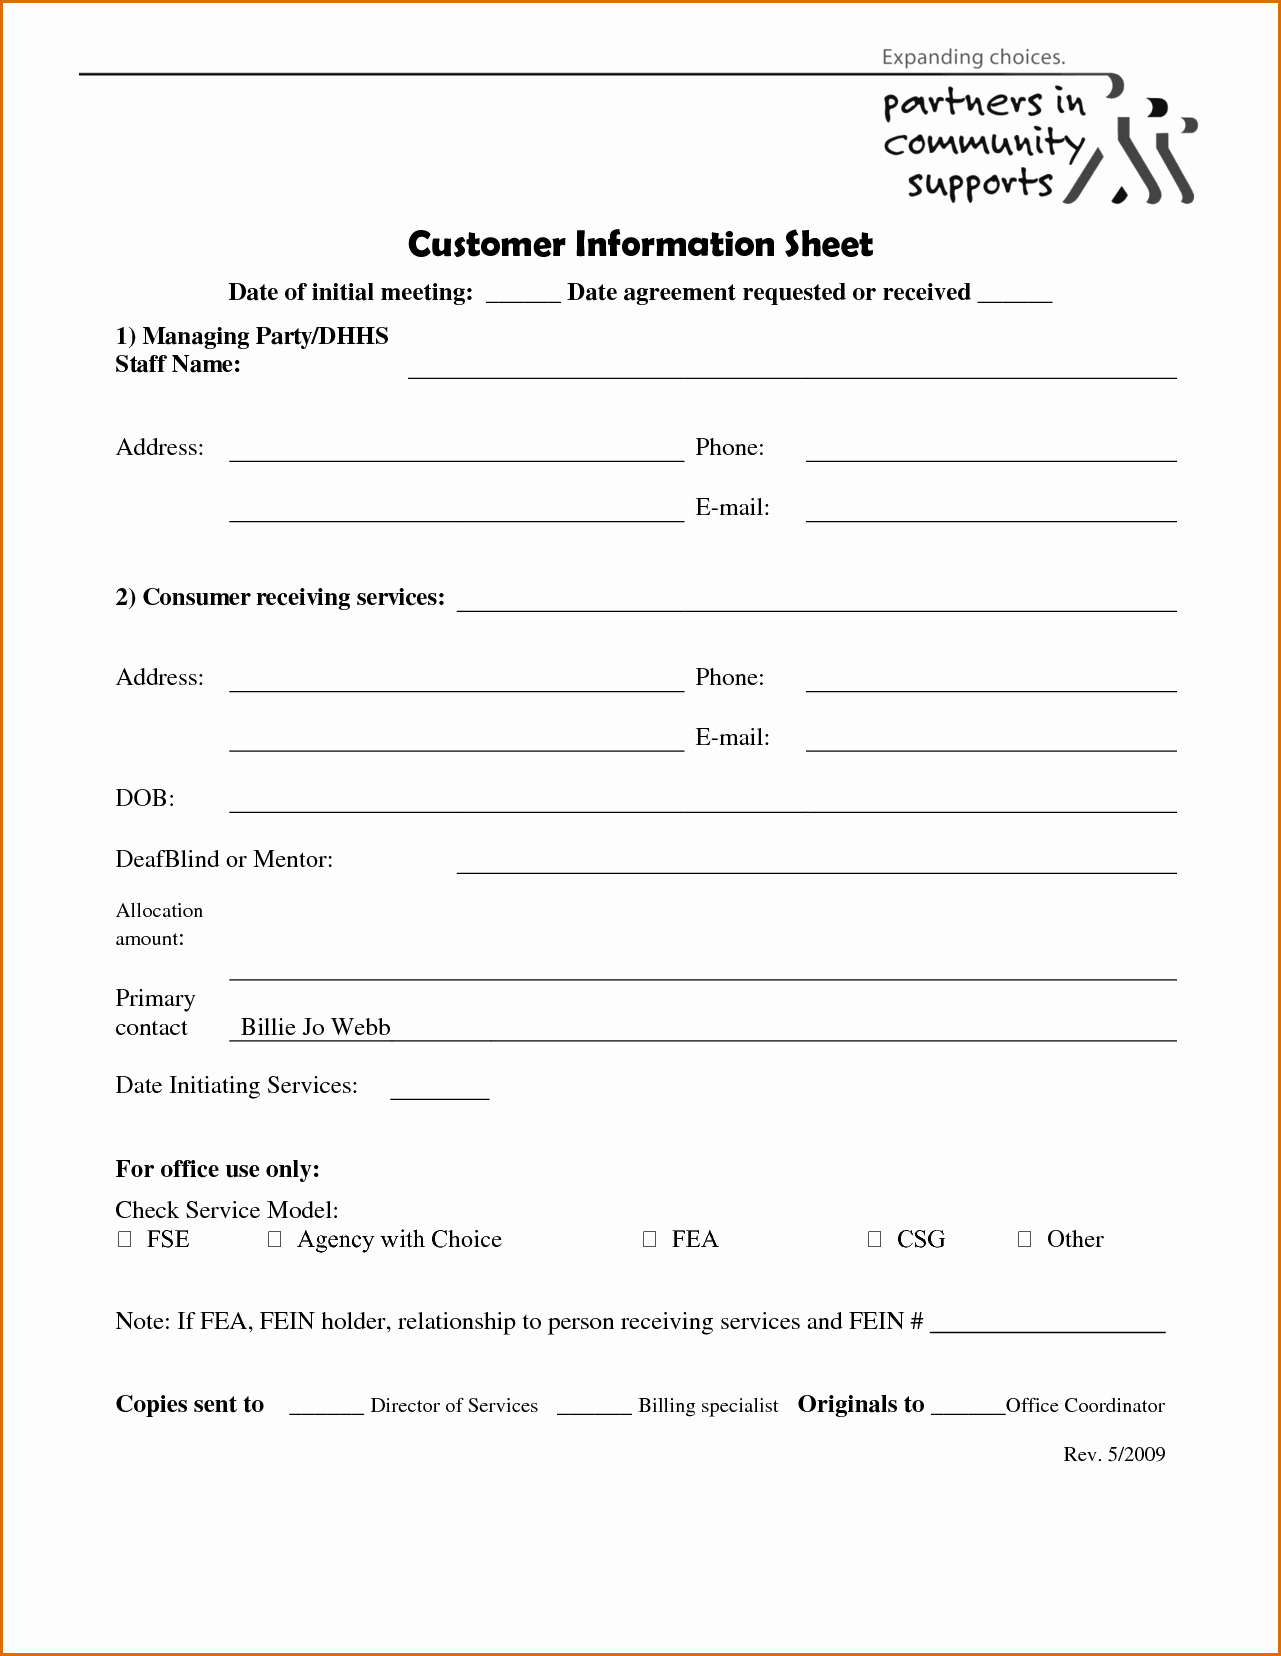 Customer Information Card Template Unique 5 Client Information Sheet